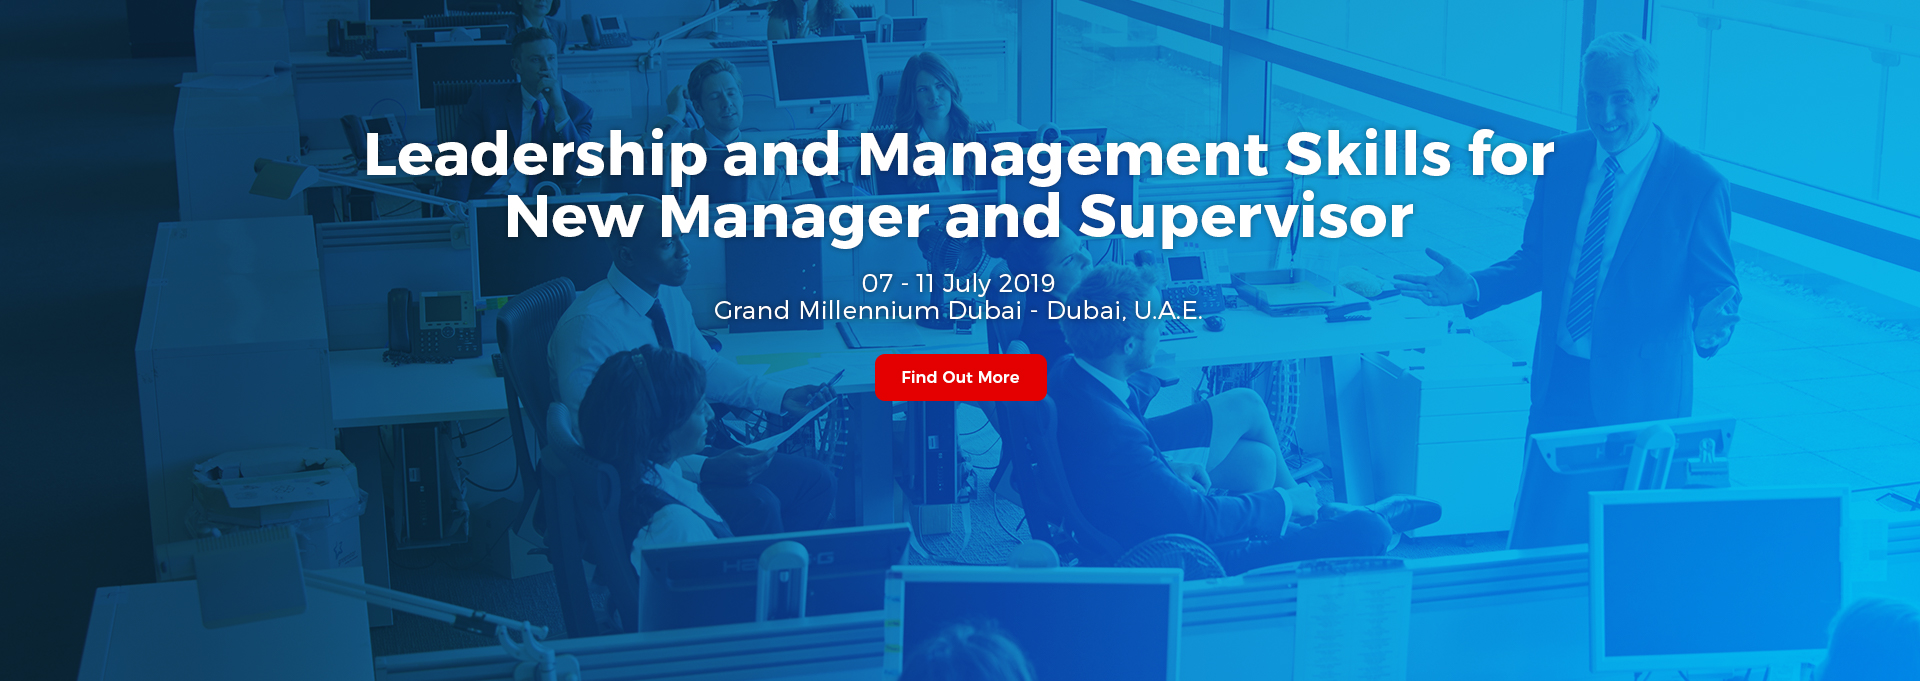 Leadership and Management Skills for New Manager and Supervisor